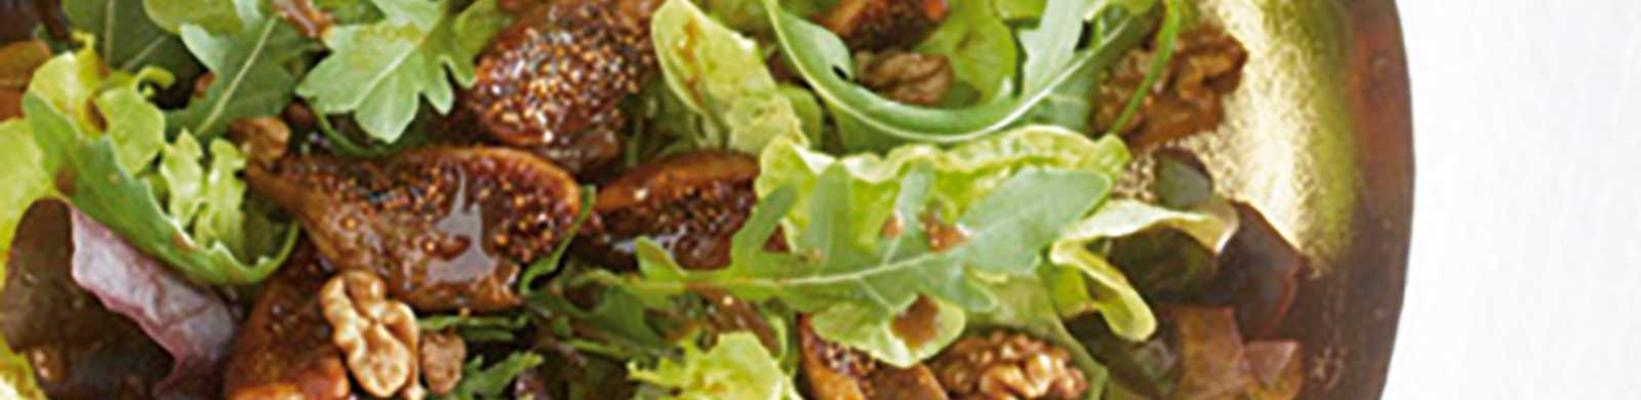 salad with figs and walnuts